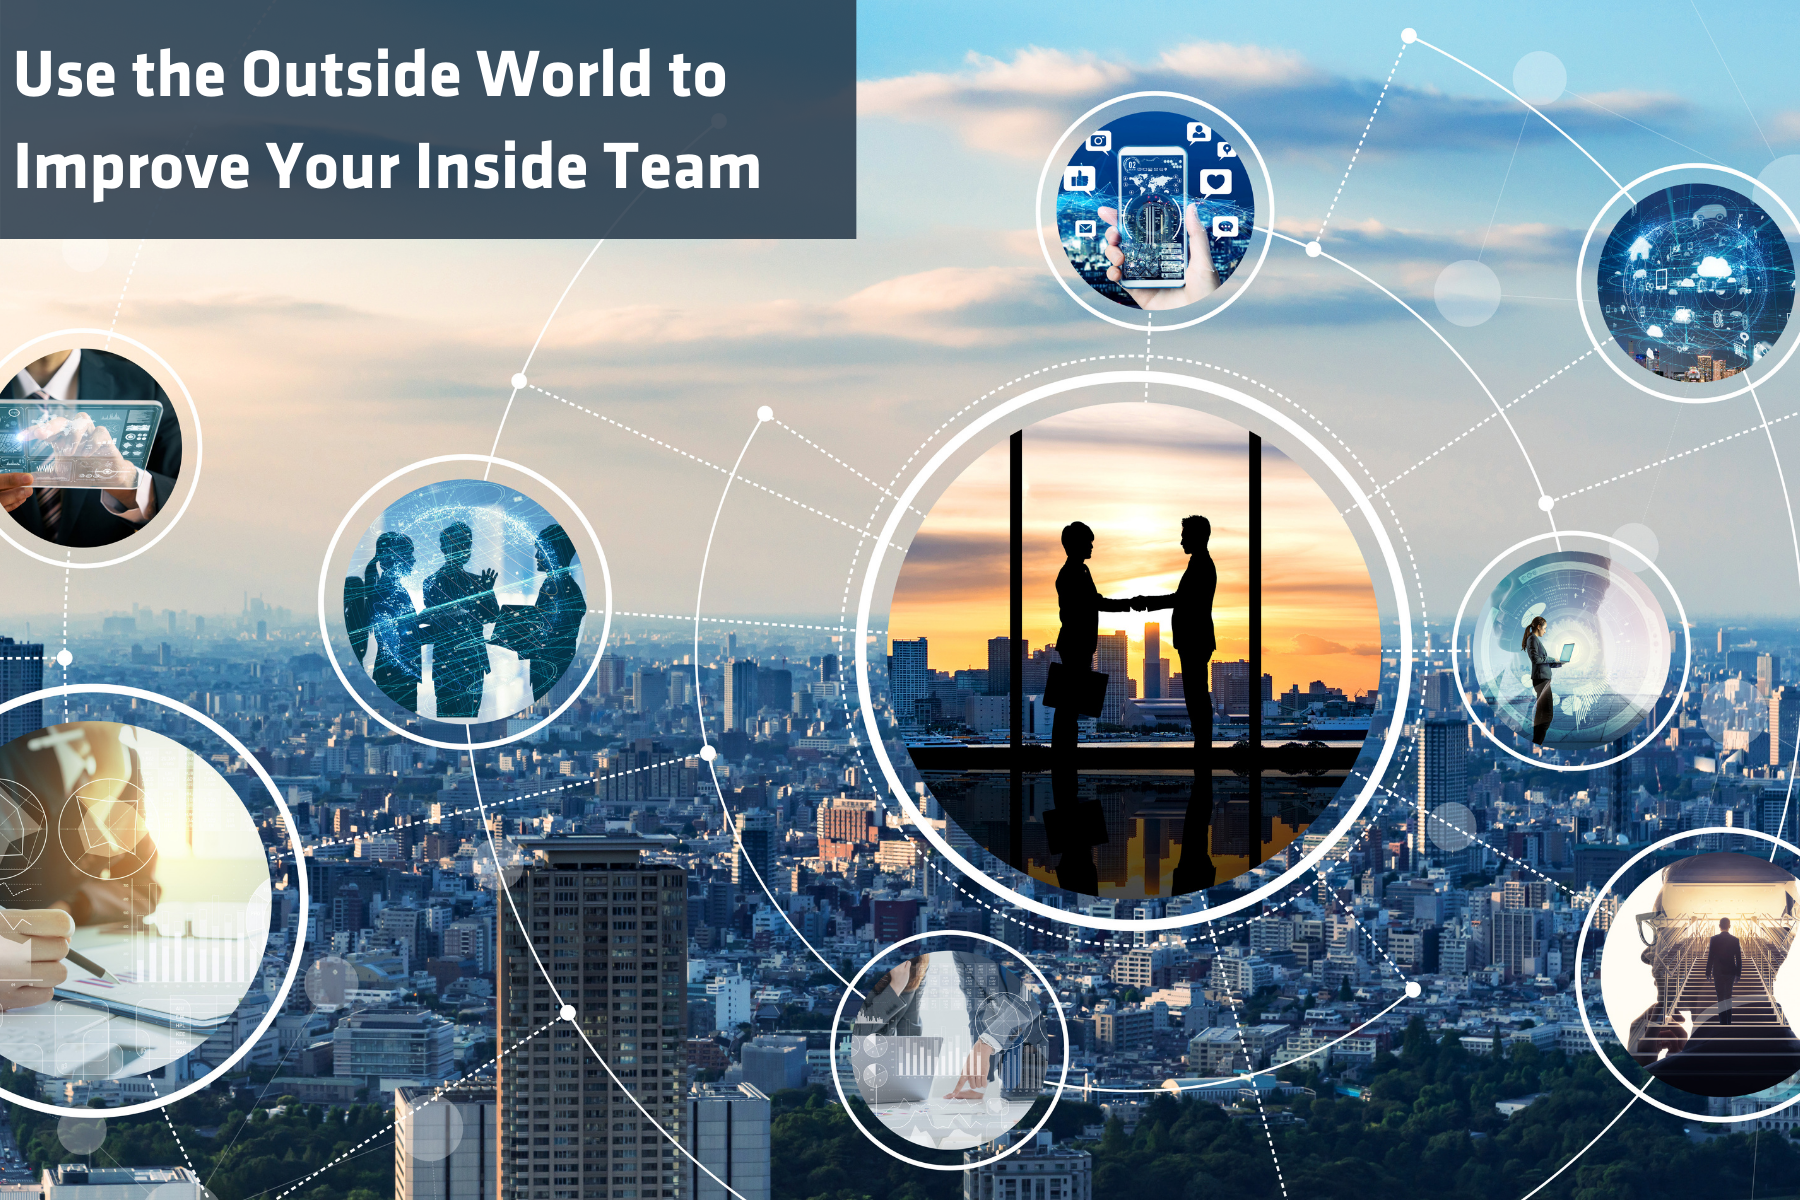 Use the Outside World to Improve Your Inside Team